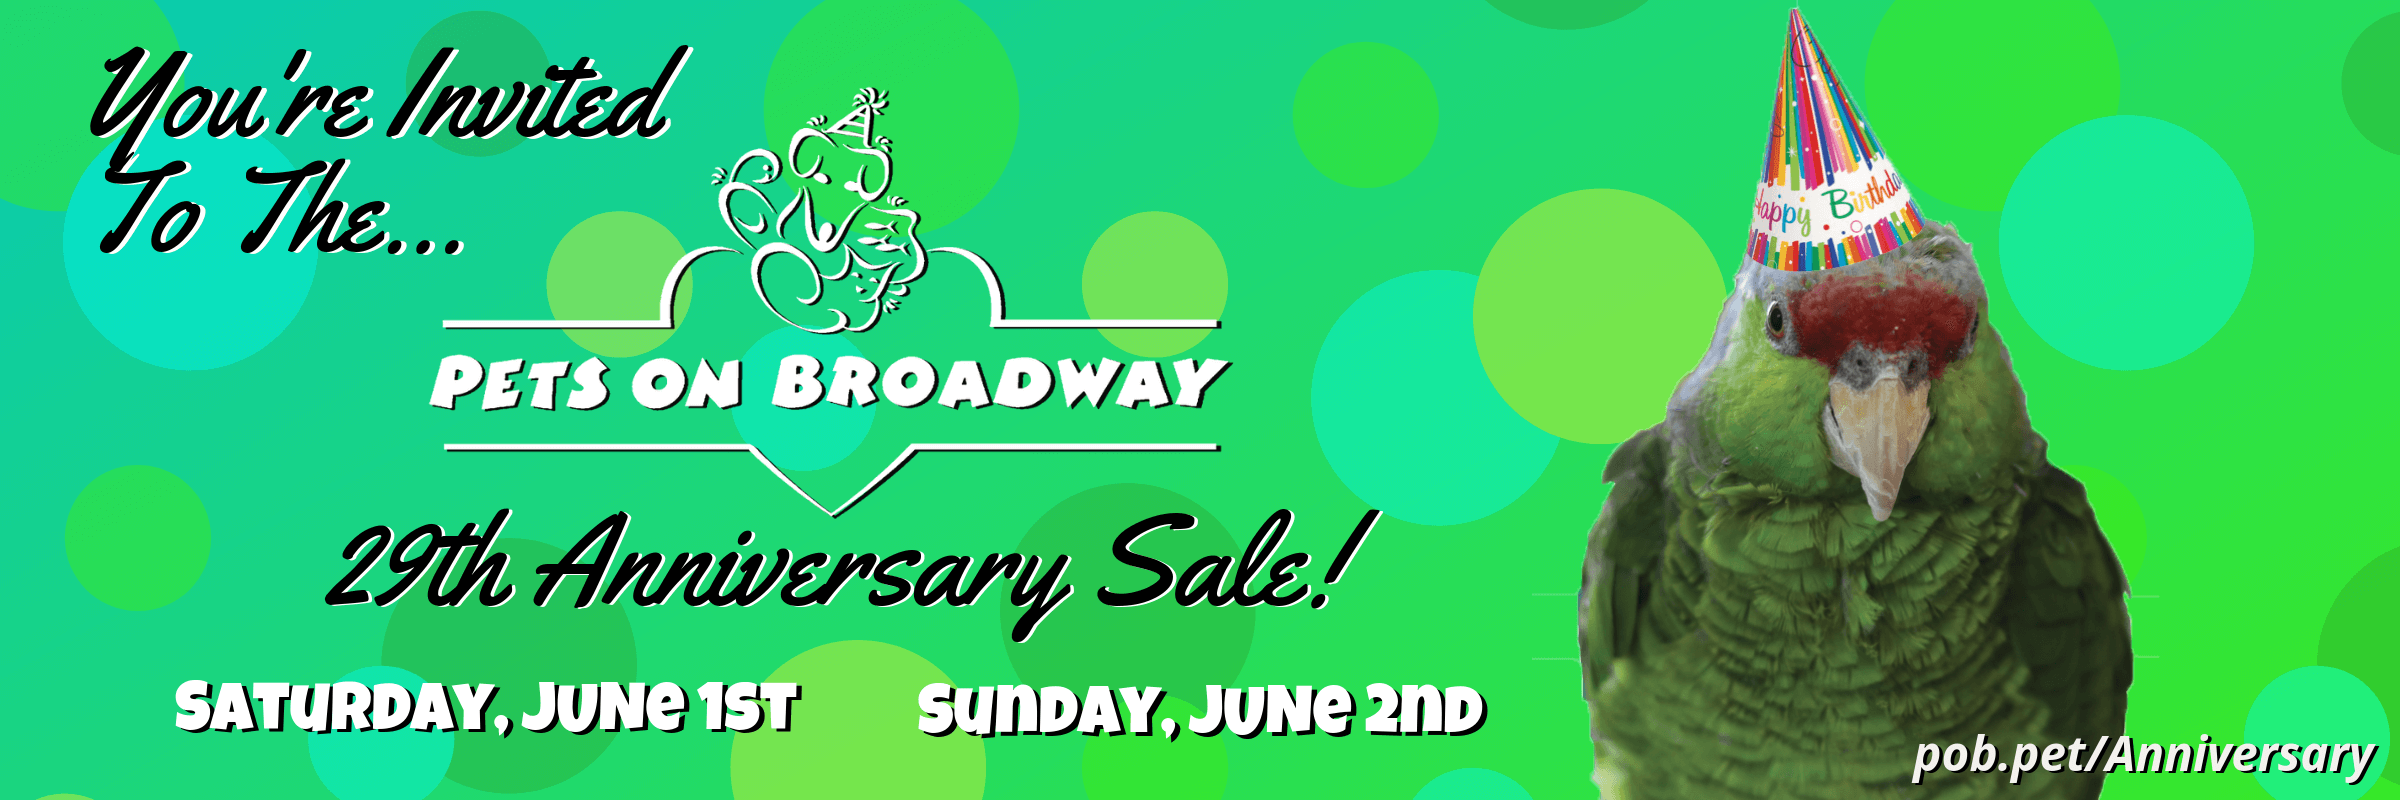 Pets on Broadway's 29th Anniversary Sale! June 1st & 2nd.